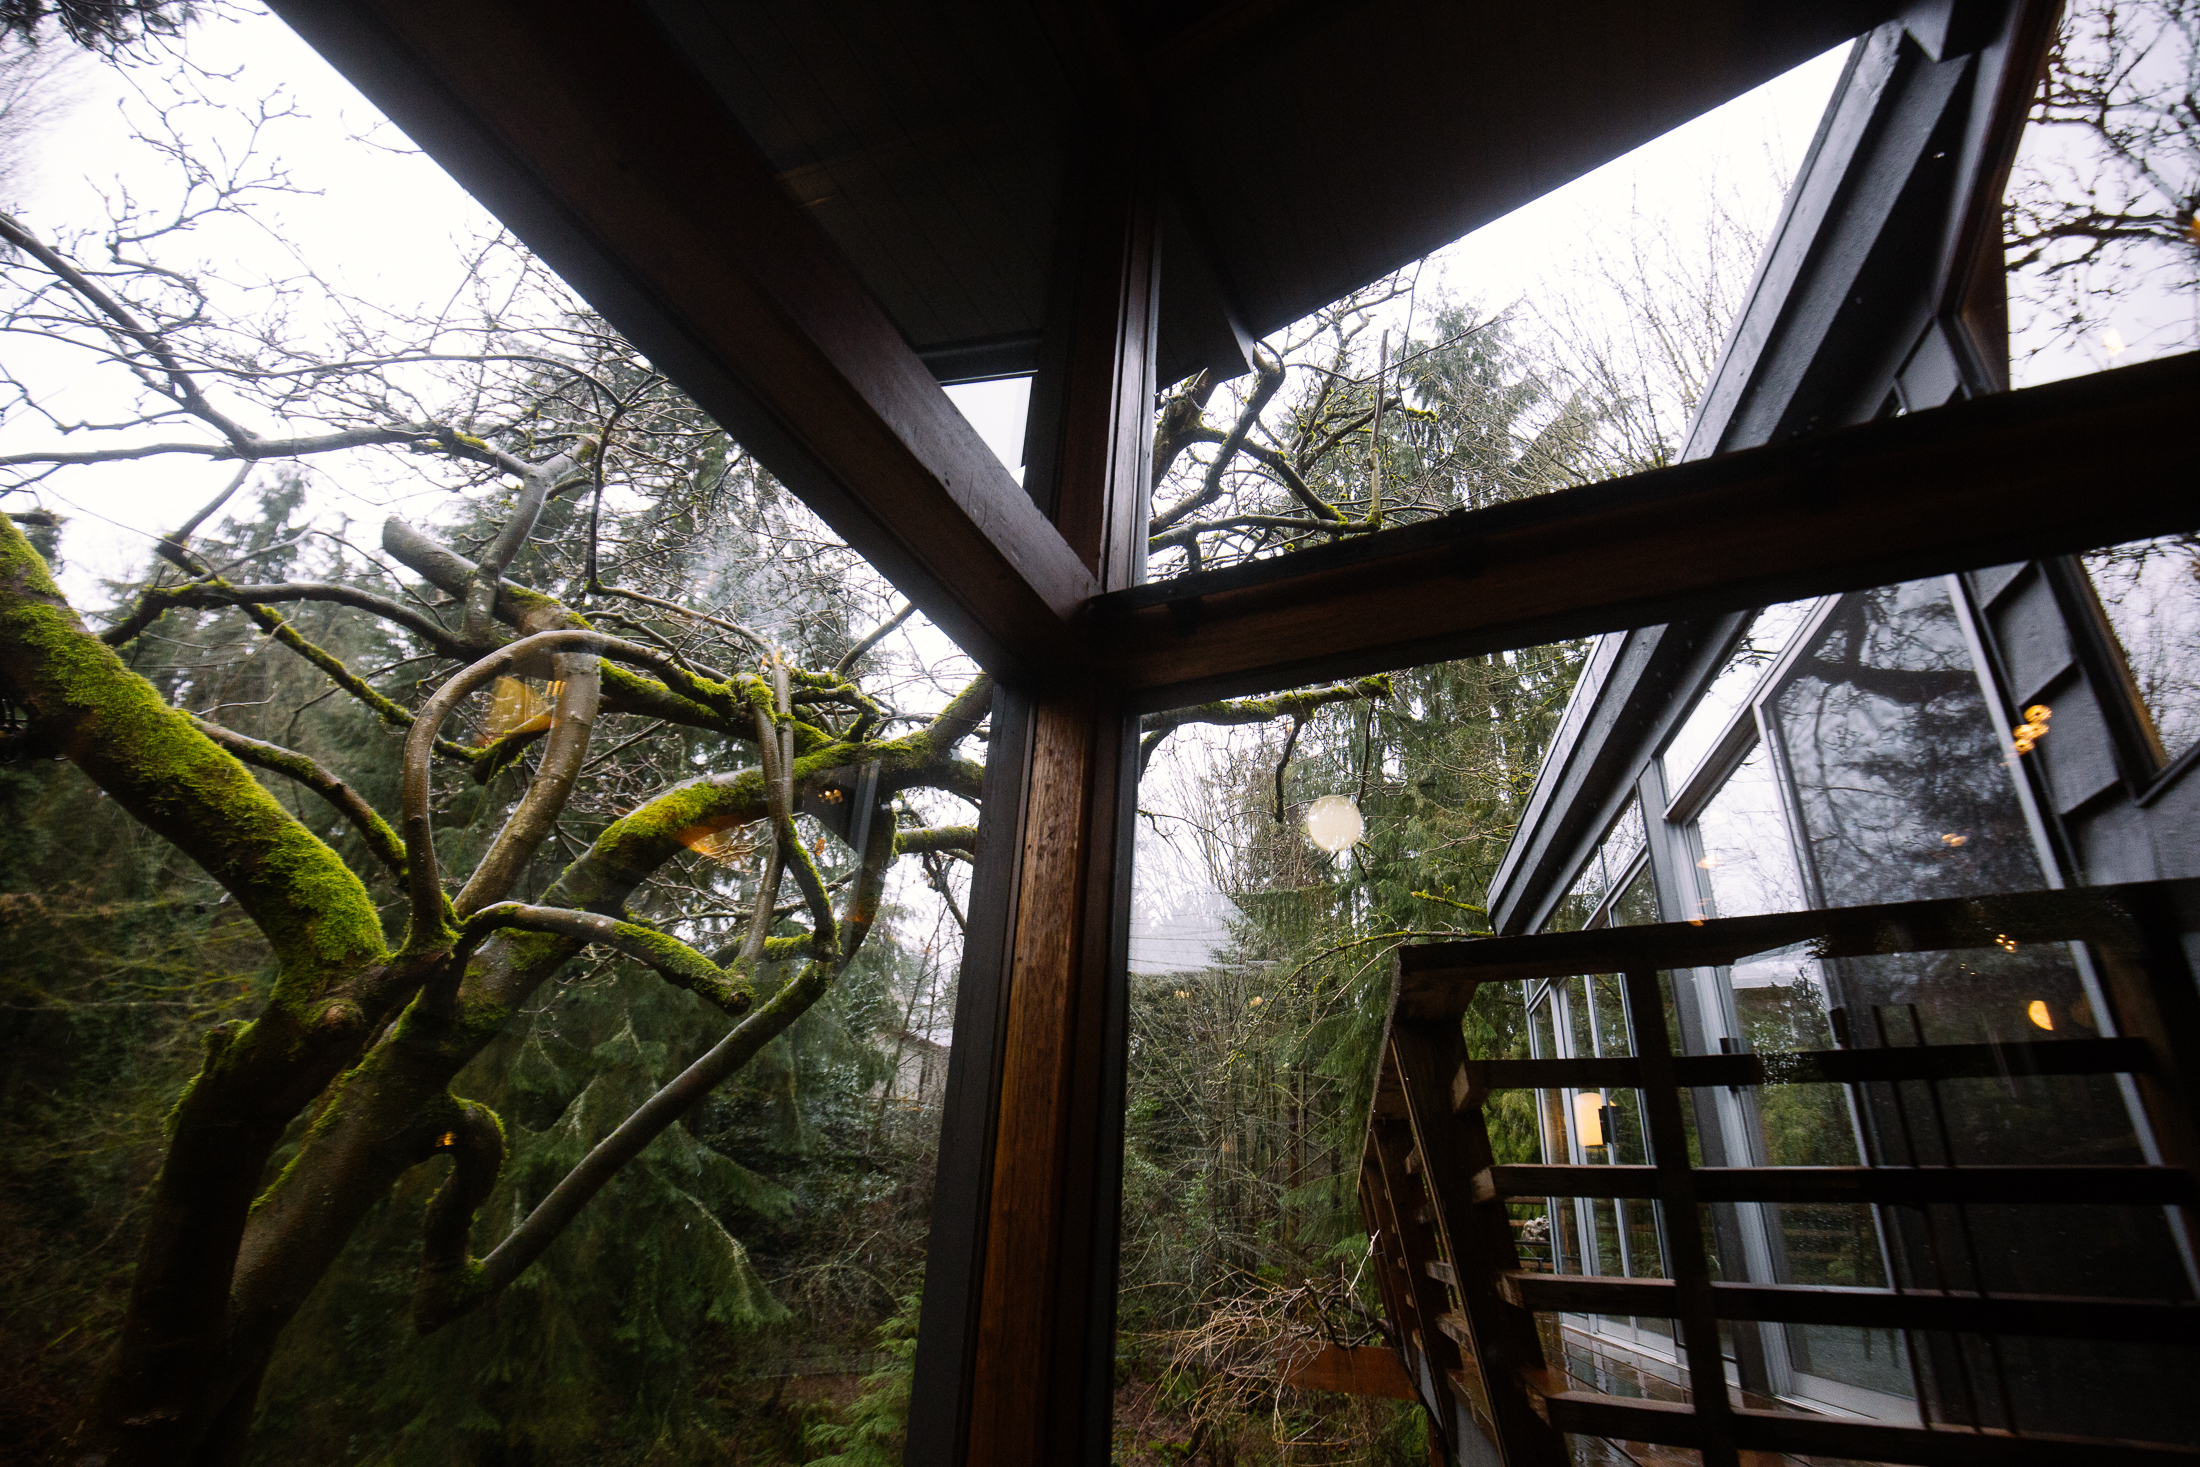 This 3+ bedroom, 2.5 bath mid-century home was designed in 1952 by Albert Fenwick Simonson. It was recently refashioned in 2016 by House Healers and features a collection of historical architectural artifacts showcasing a century of Pacific Northwest history.